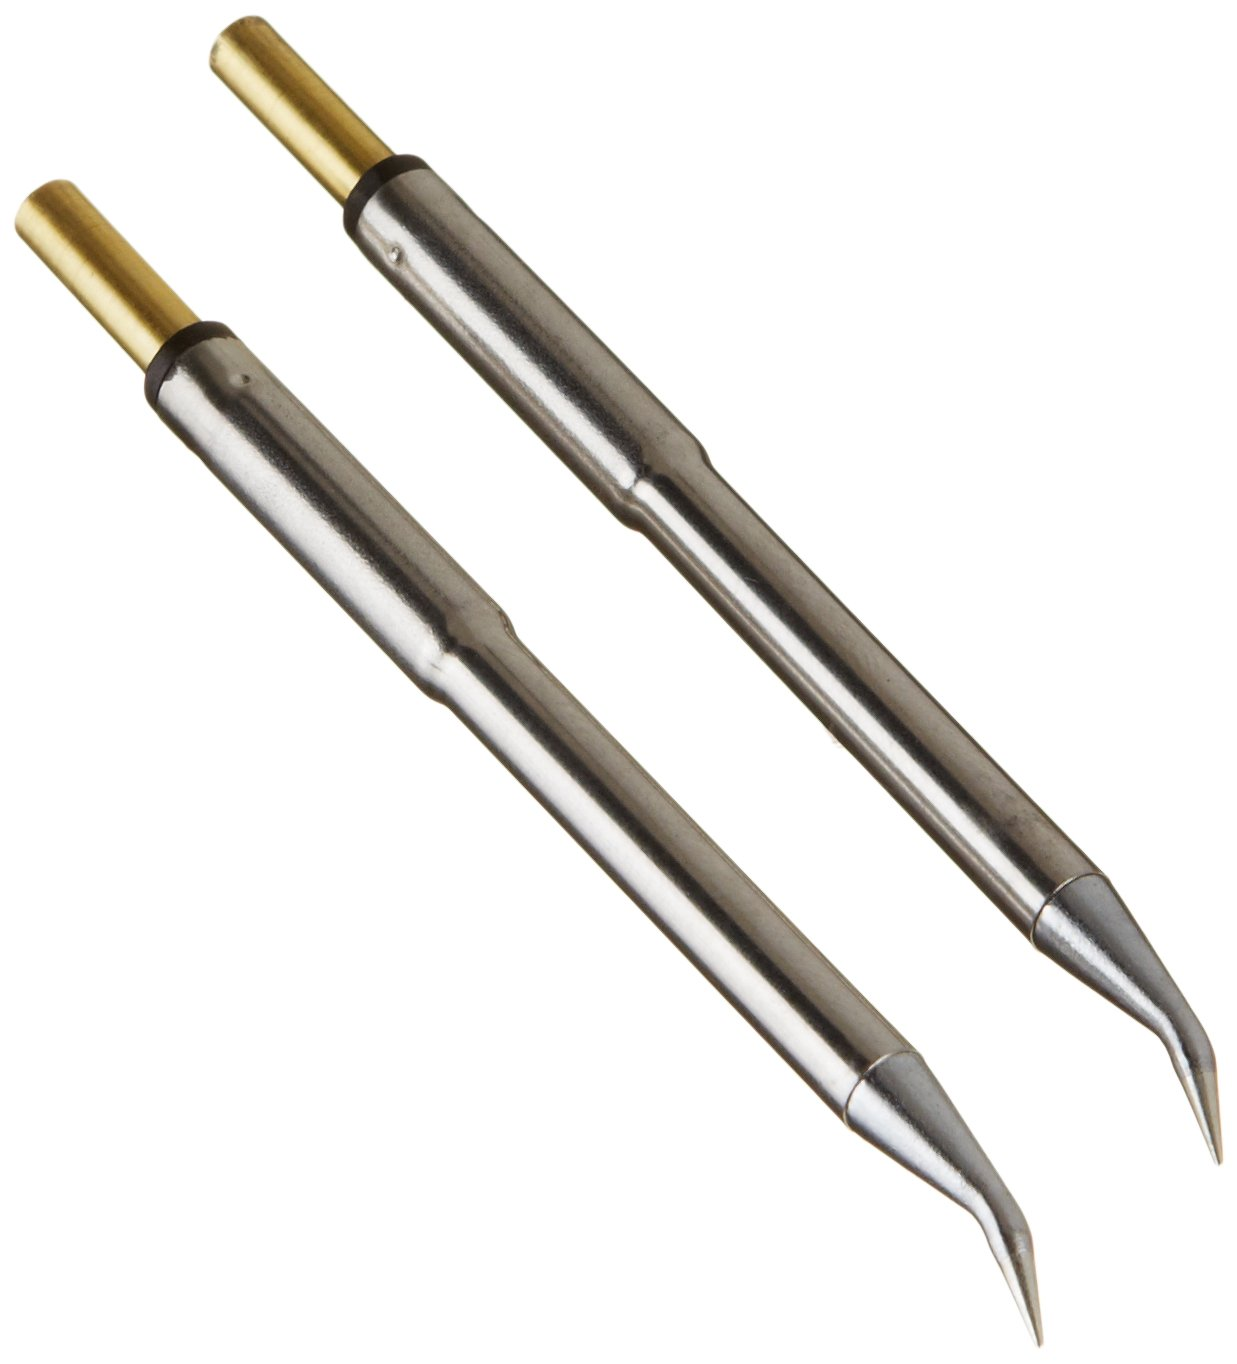 Metcal PTTC-701B PTTC Series Tweezer Cartridge for Most Standard Applications, Conical Bent 30 Degree, 412 Degree C Maximum Tip Temperature, 0.4mm Tip Size, 14.3mm Tip Length by Metcal (Image #1)